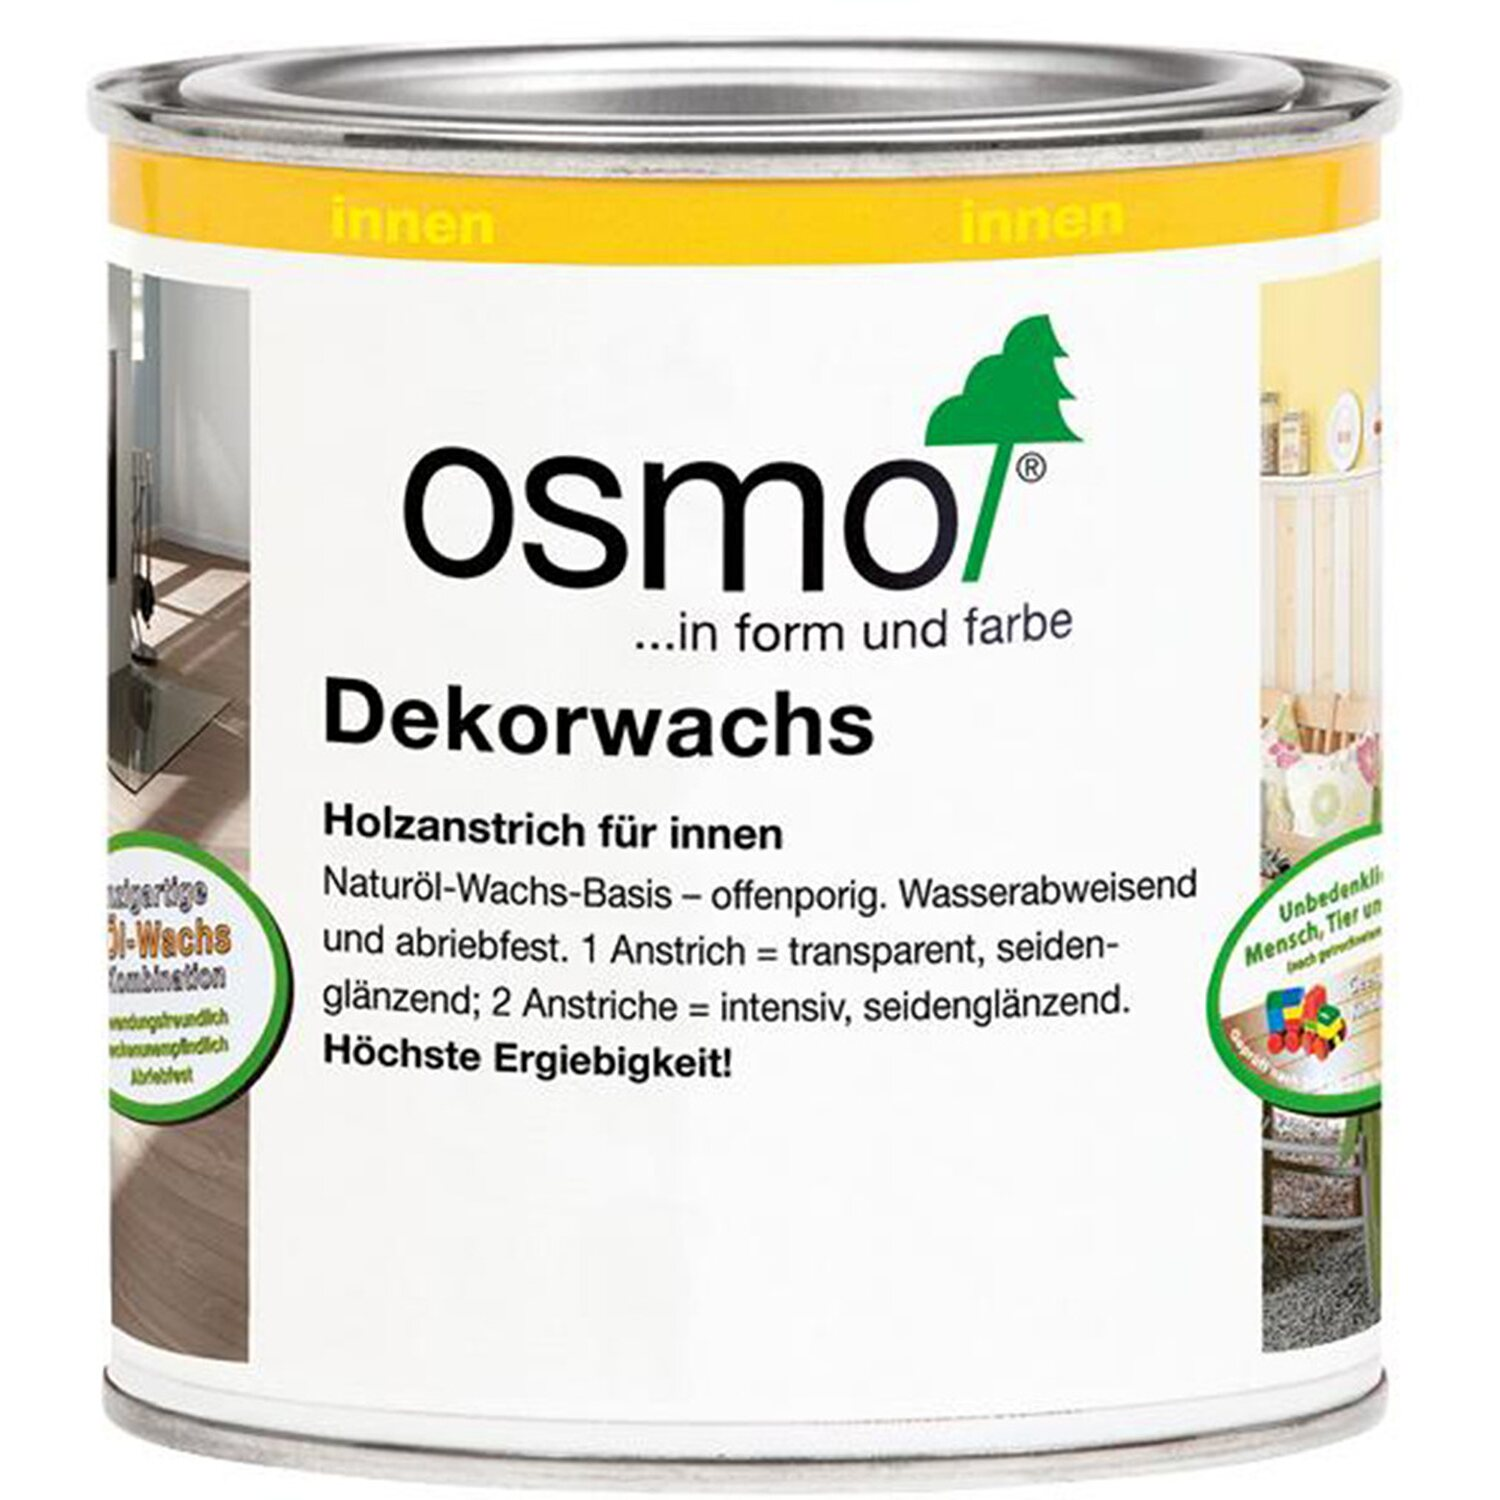 Osmo Dekorwachs Transparent Ebenholz 375 ml